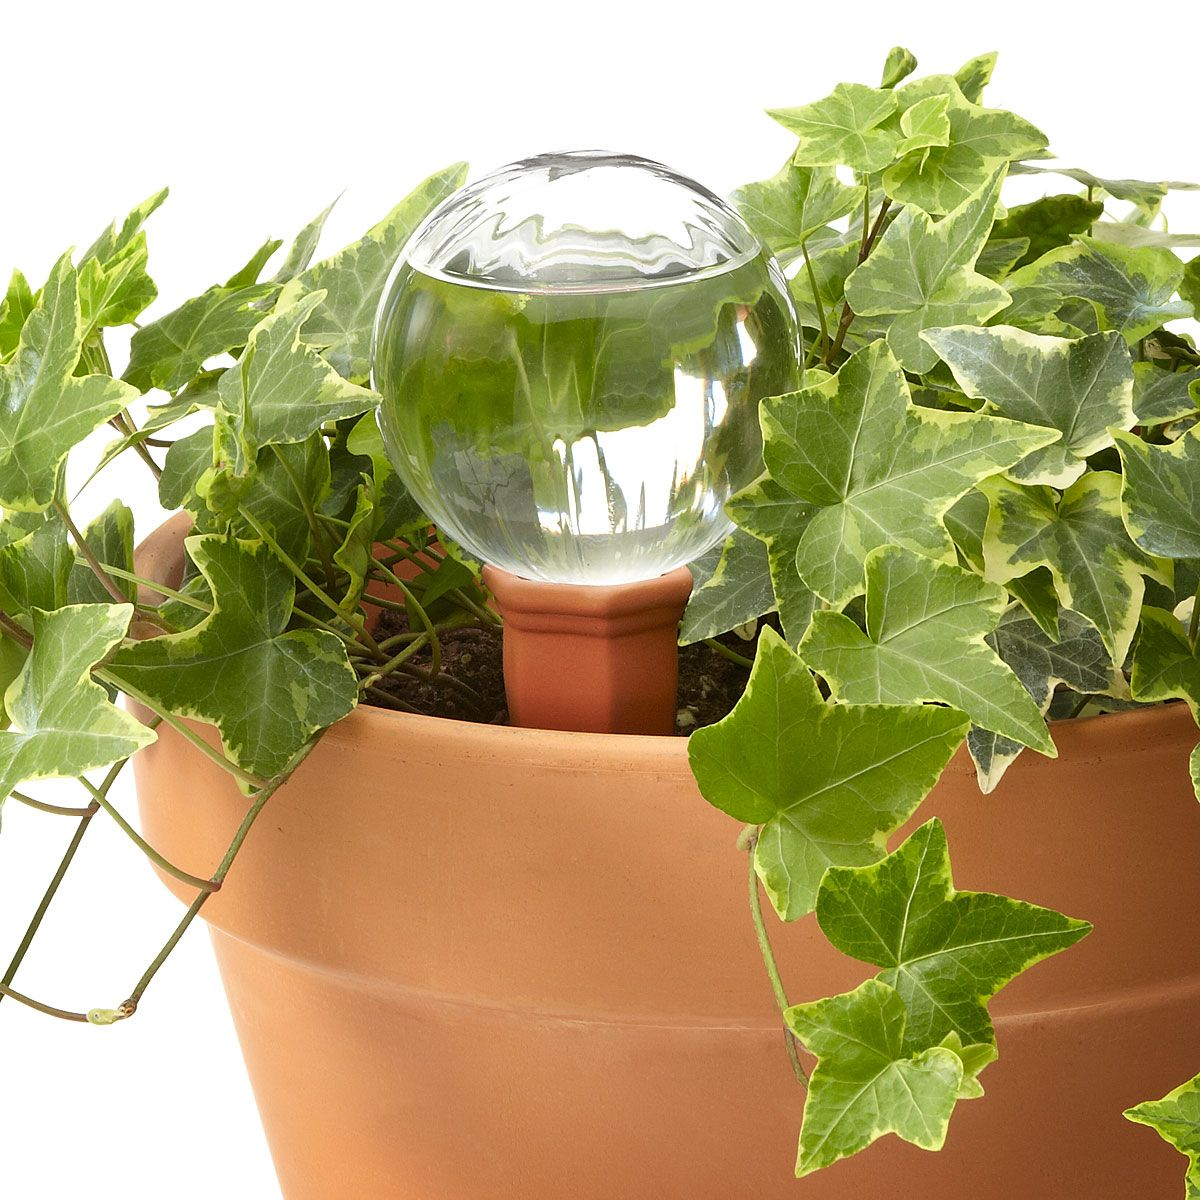 Automatic watering system for potted plants - Watering Globe And Plant Nanny Stake Self Watering Planter Uncommongoods